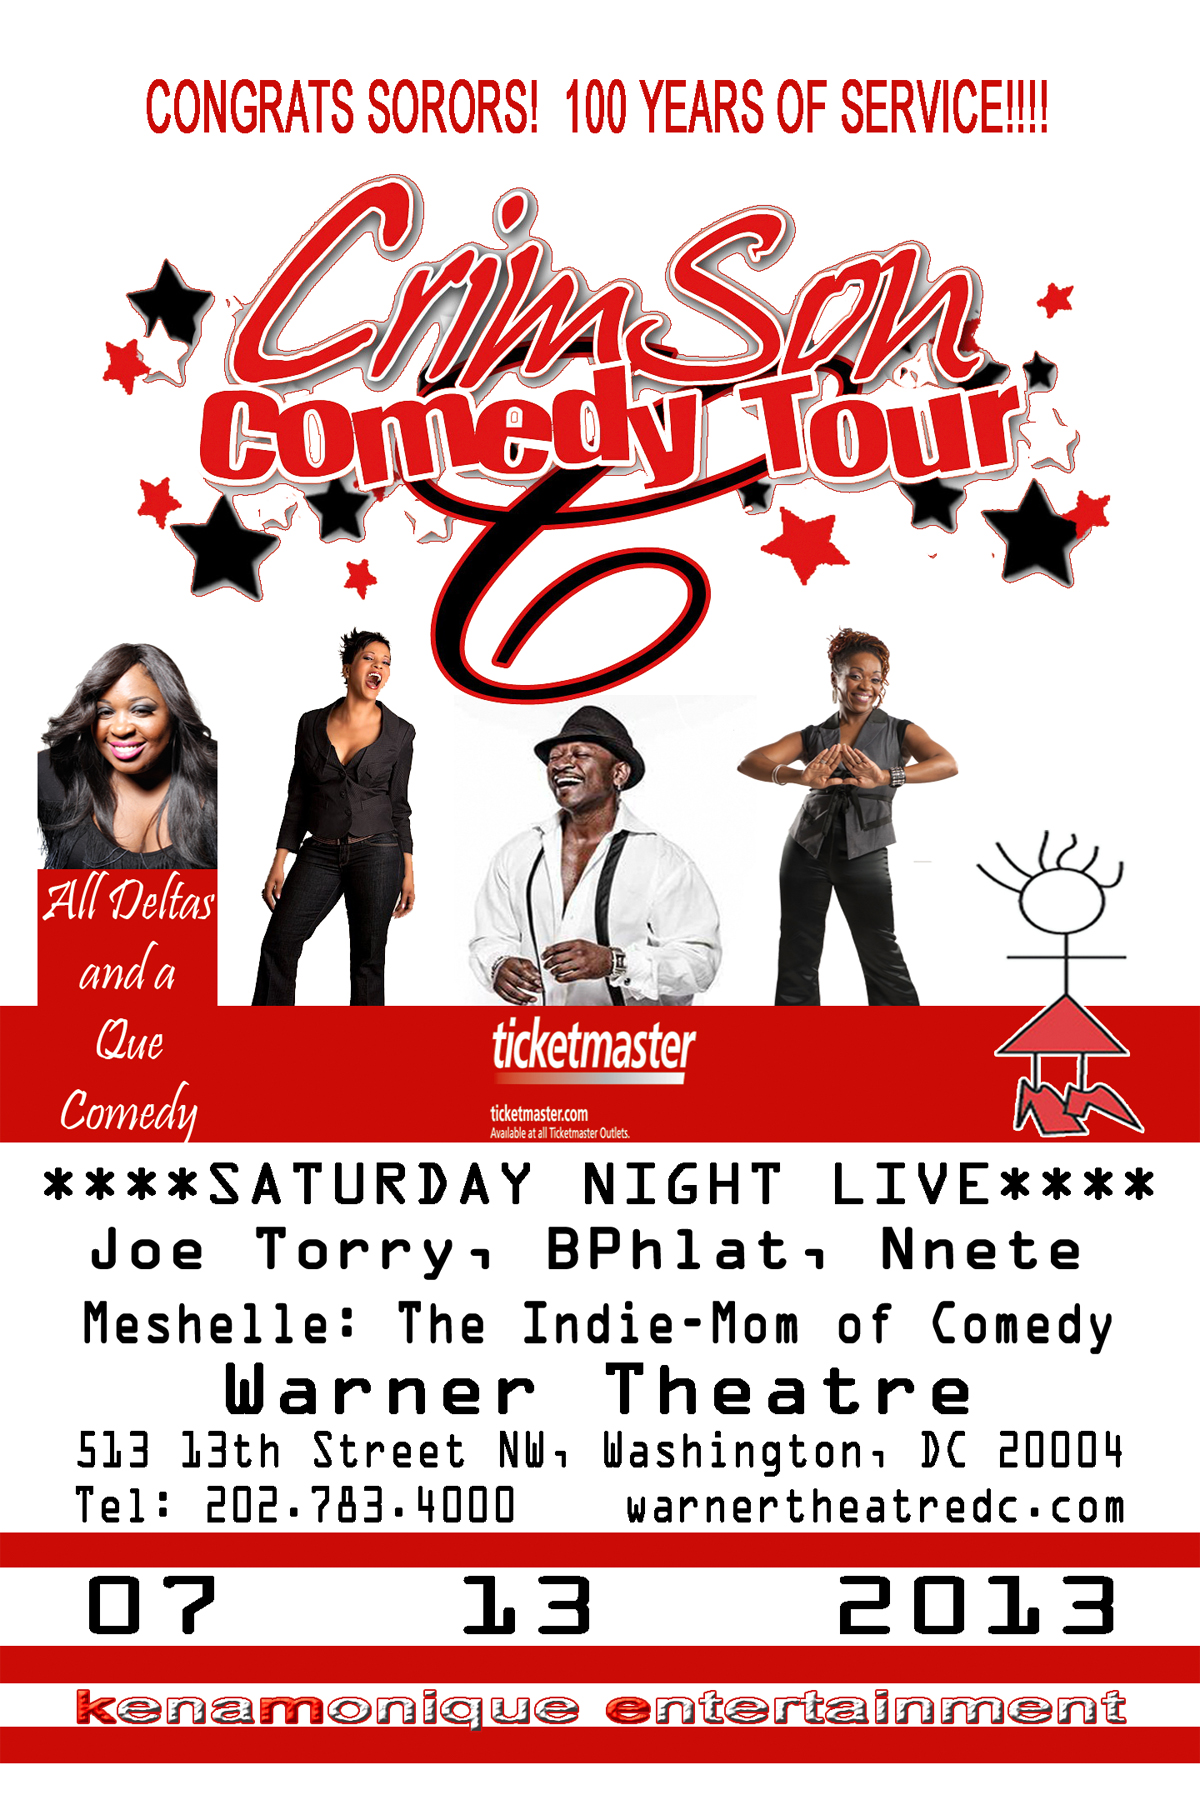 Oo-oop My Sorors!! See you in DC for the Crimson Comedy Tour!